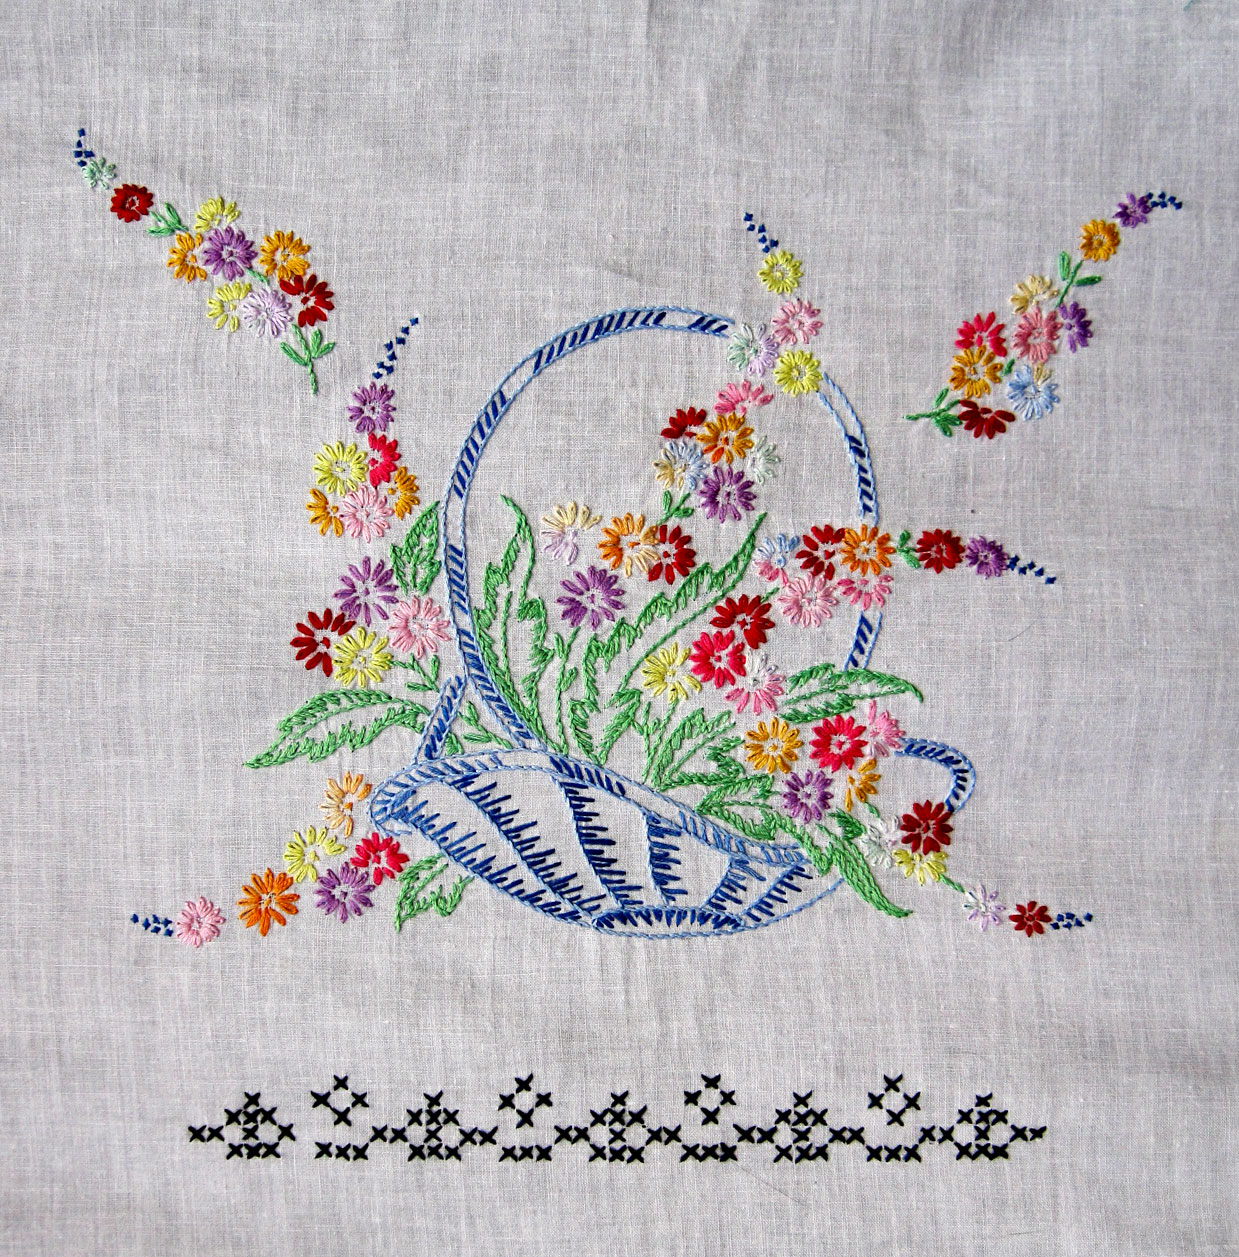 Embroidery was an important art in the Medieval Islamic world. The 17th-century Turkish traveler Evliya Çelebi called it the